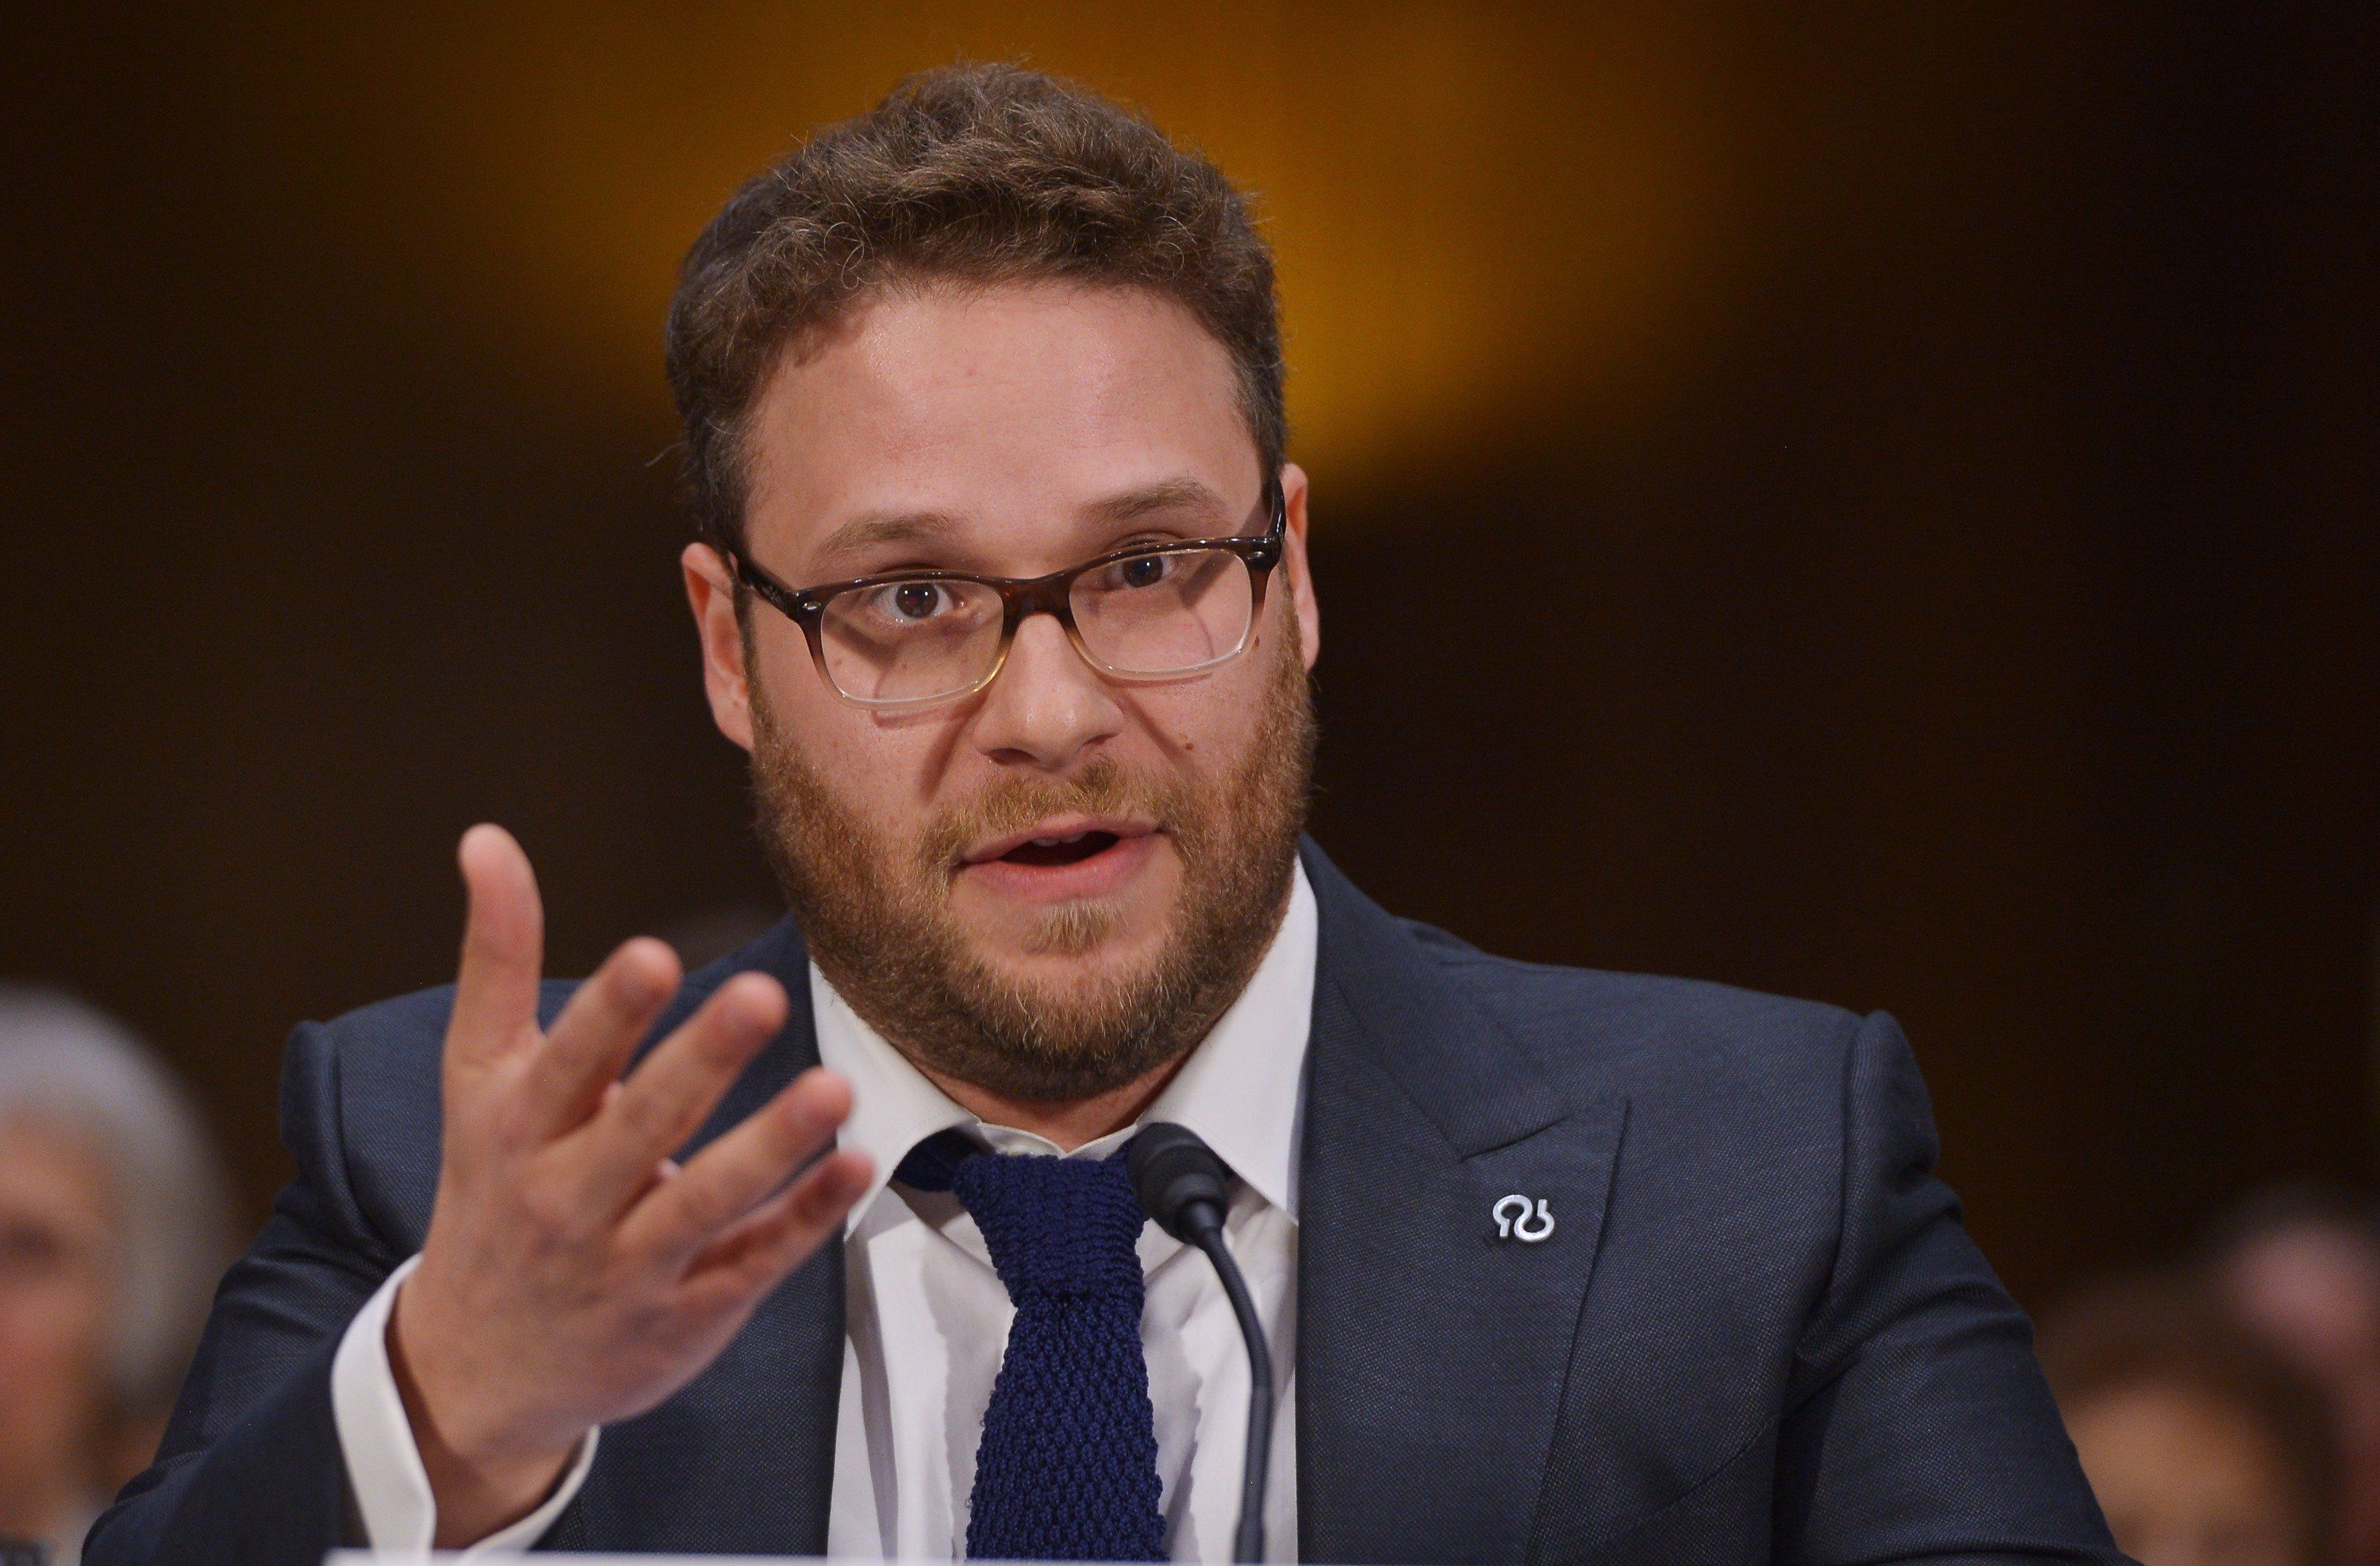 Seth Rogen got into a Twitter dispute with right-wing radio host Bill Mitchell this